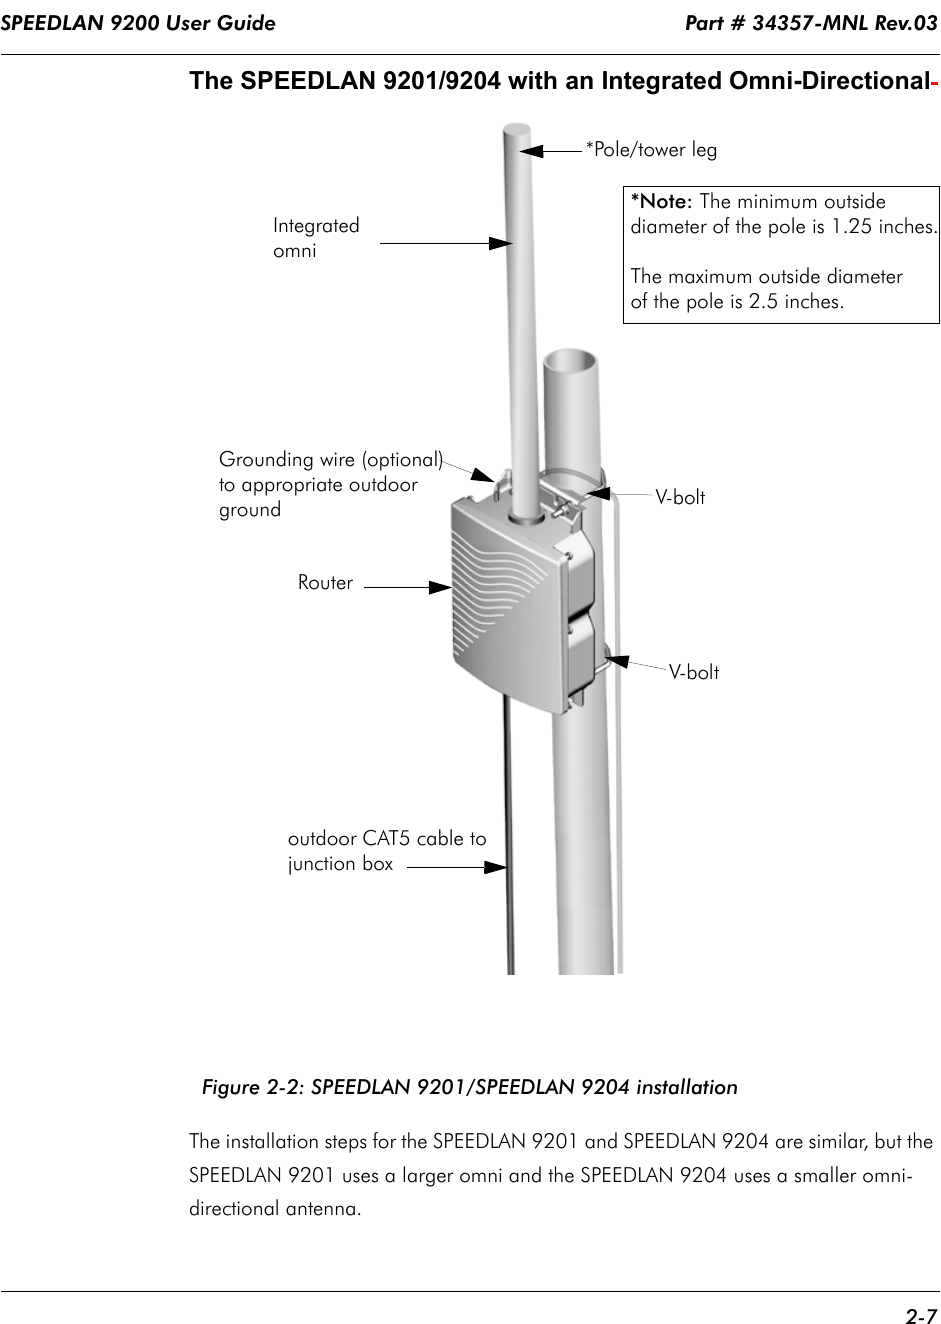 SPEEDLAN 9200 User Guide                                                                   Part # 34357-MNL Rev.03      2-7                                                                                                                                                              The SPEEDLAN 9201/9204 with an Integrated Omni-Directional Figure 2-2: SPEEDLAN 9201/SPEEDLAN 9204 installationThe installation steps for the SPEEDLAN 9201 and SPEEDLAN 9204 are similar, but the SPEEDLAN 9201 uses a larger omni and the SPEEDLAN 9204 uses a smaller omni- directional antenna.Integrated outdoor CAT5 cable to*Pole/tower legGrounding wire (optional)junction boxV-bolt       Router               omniV-bolt  *Note: The minimum outsidediameter of the pole is 1.25 inches.The maximum outside diameterof the pole is 2.5 inches.to appropriate outdoorground